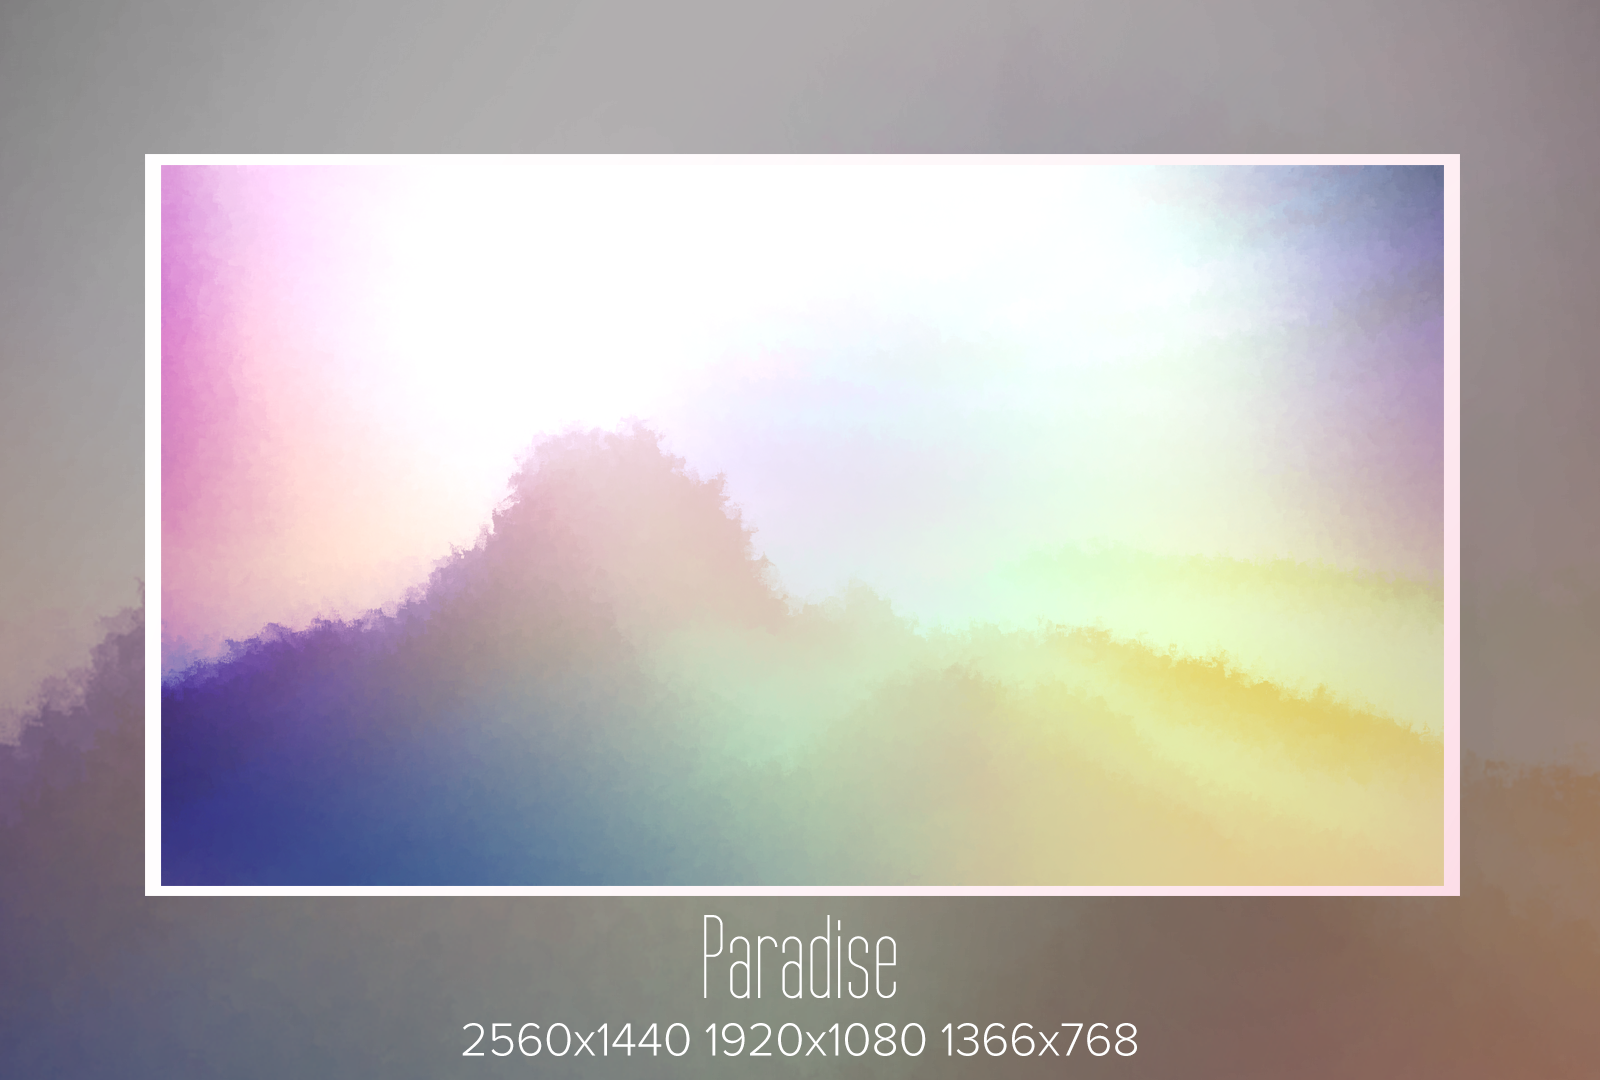 paradise_by_azery-d89qmih.png